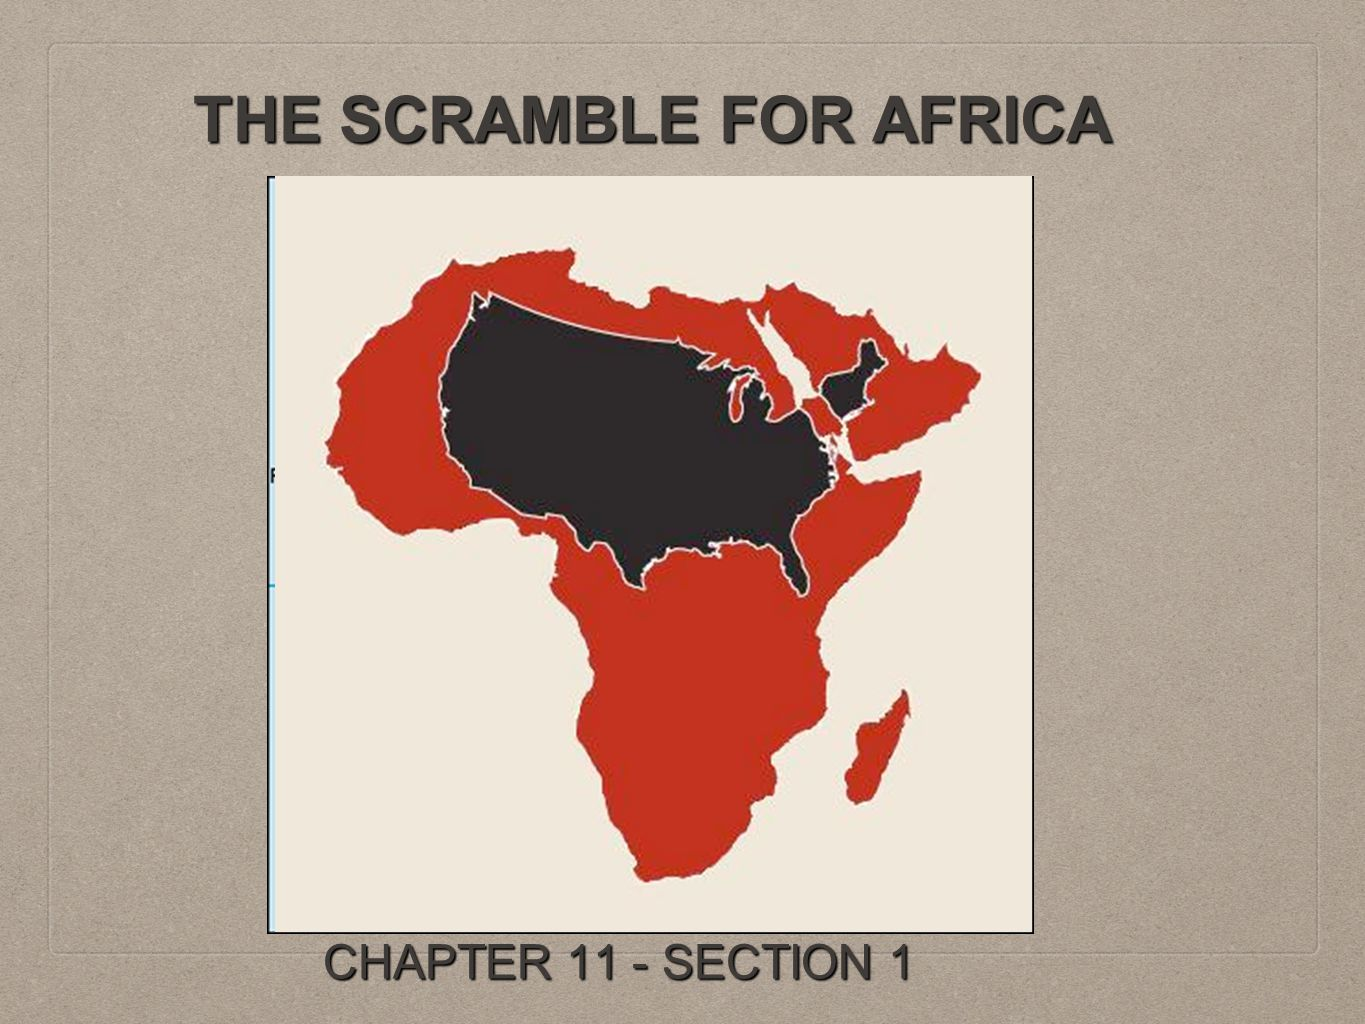 THE SCRAMBLE FOR AFRICA CHAPTER 11 - SECTION 1